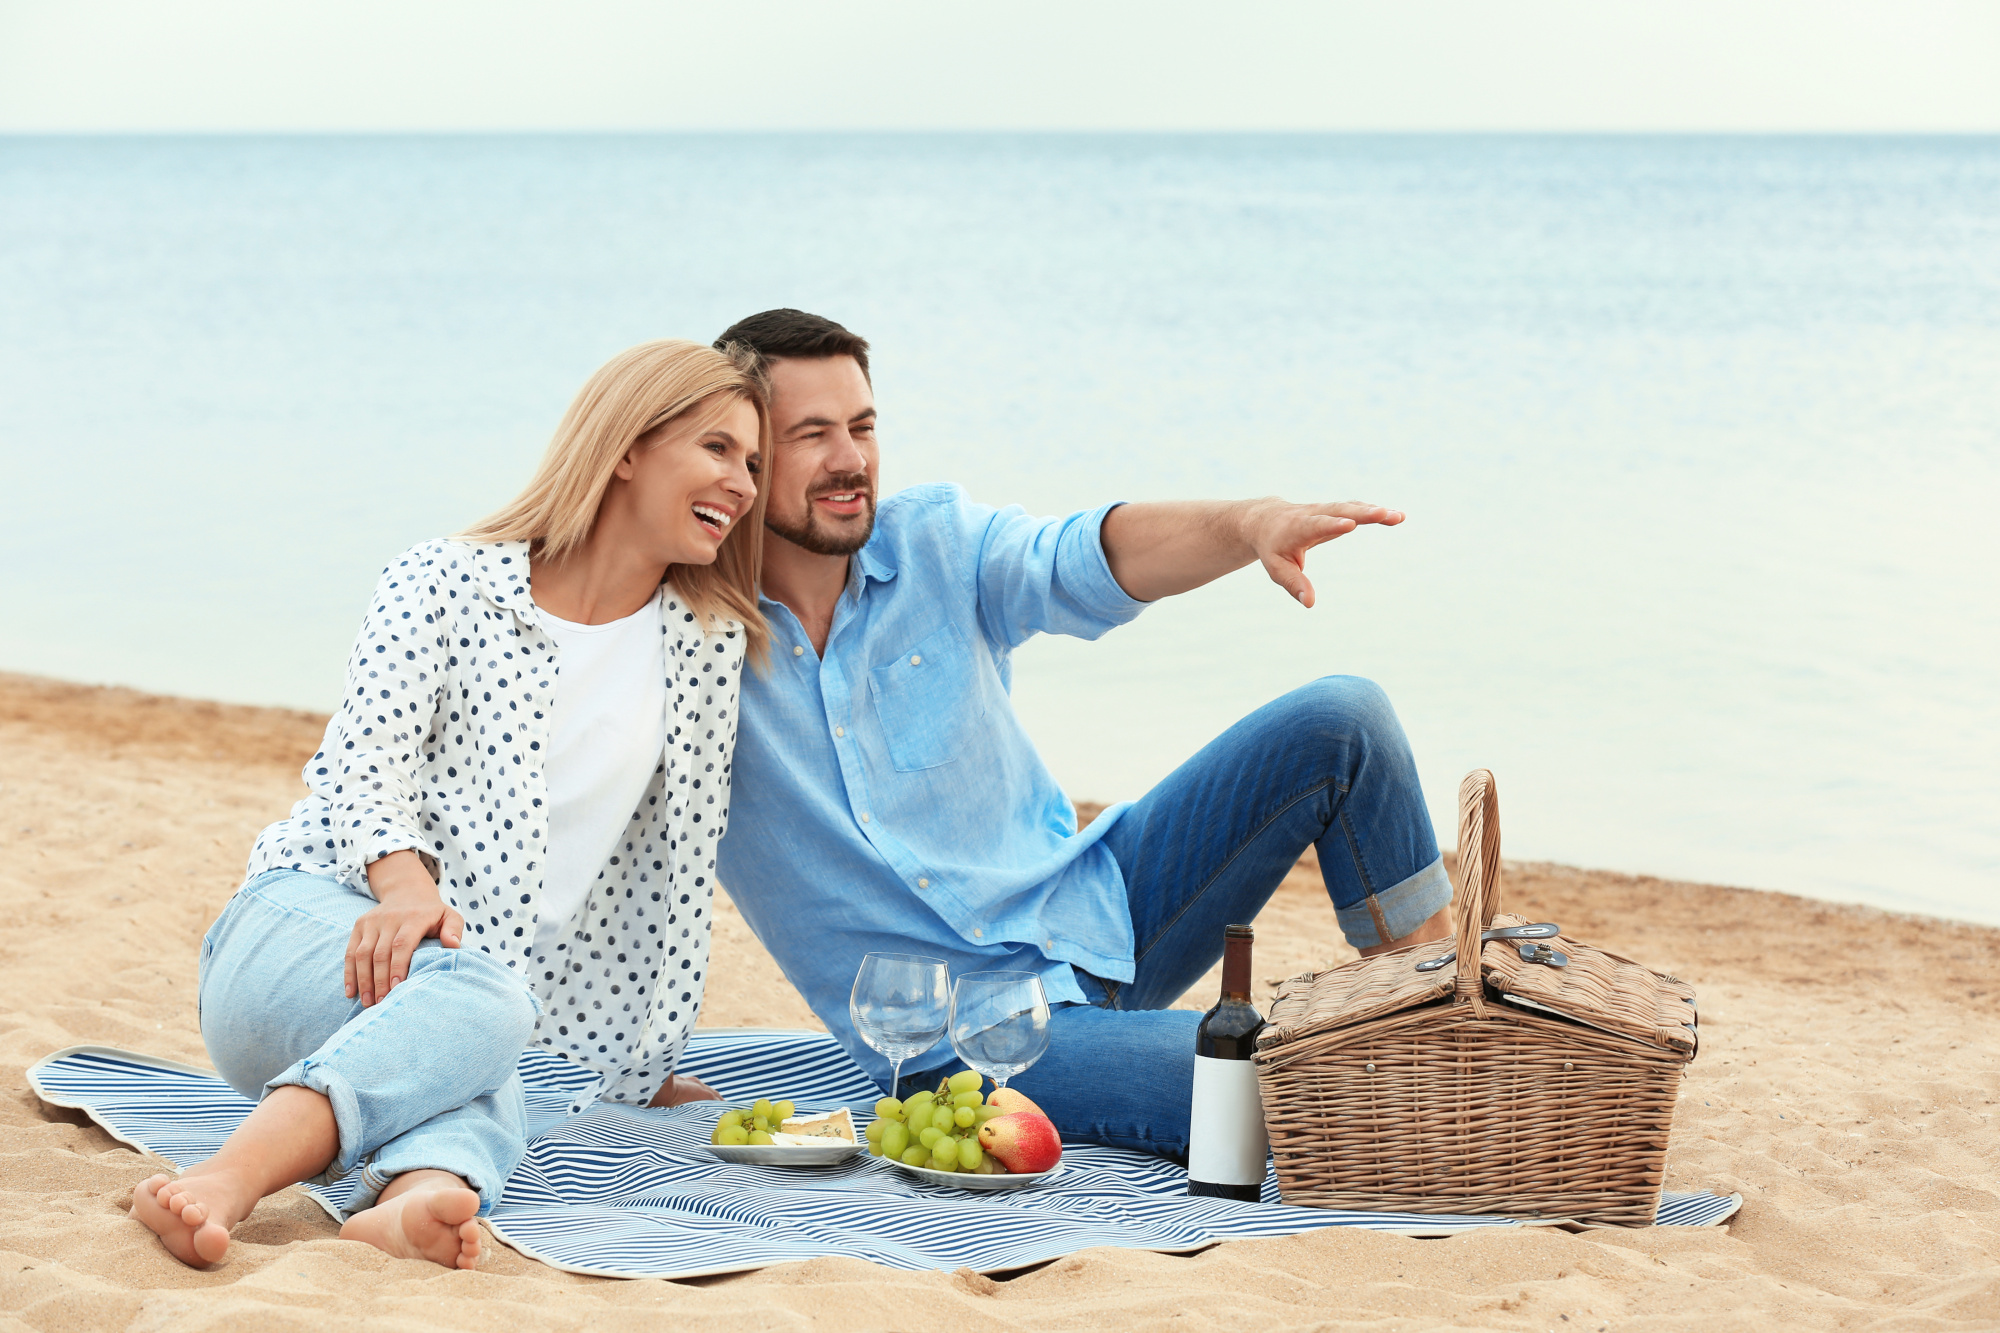 romantic picnic for two, couple sitting on picnic blanket at the beach